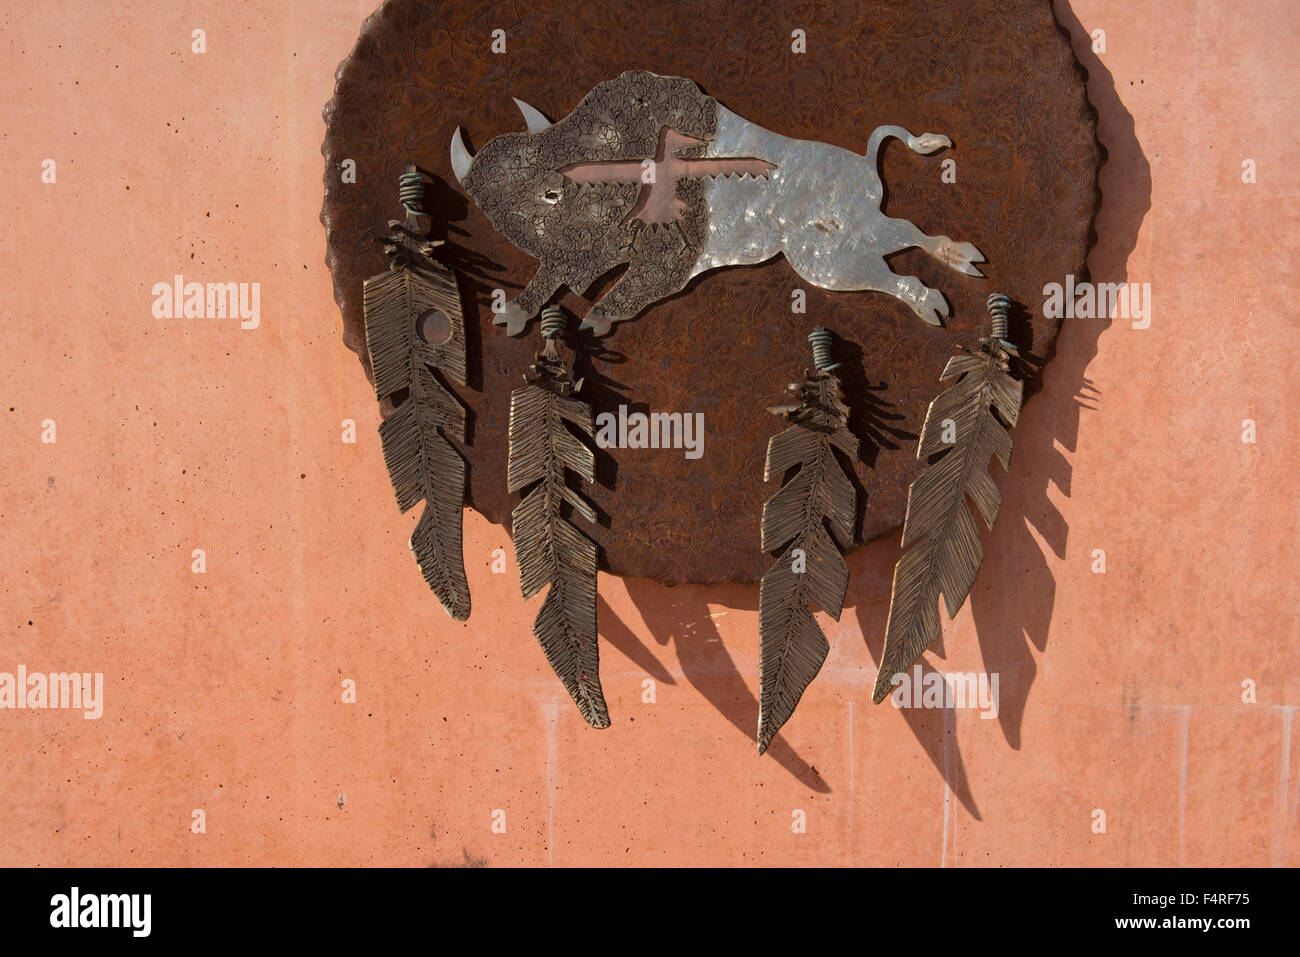 Absalooke Veterans Park, Crow Agency, Crow Indian Reservation, Montana, USA - Stock Image